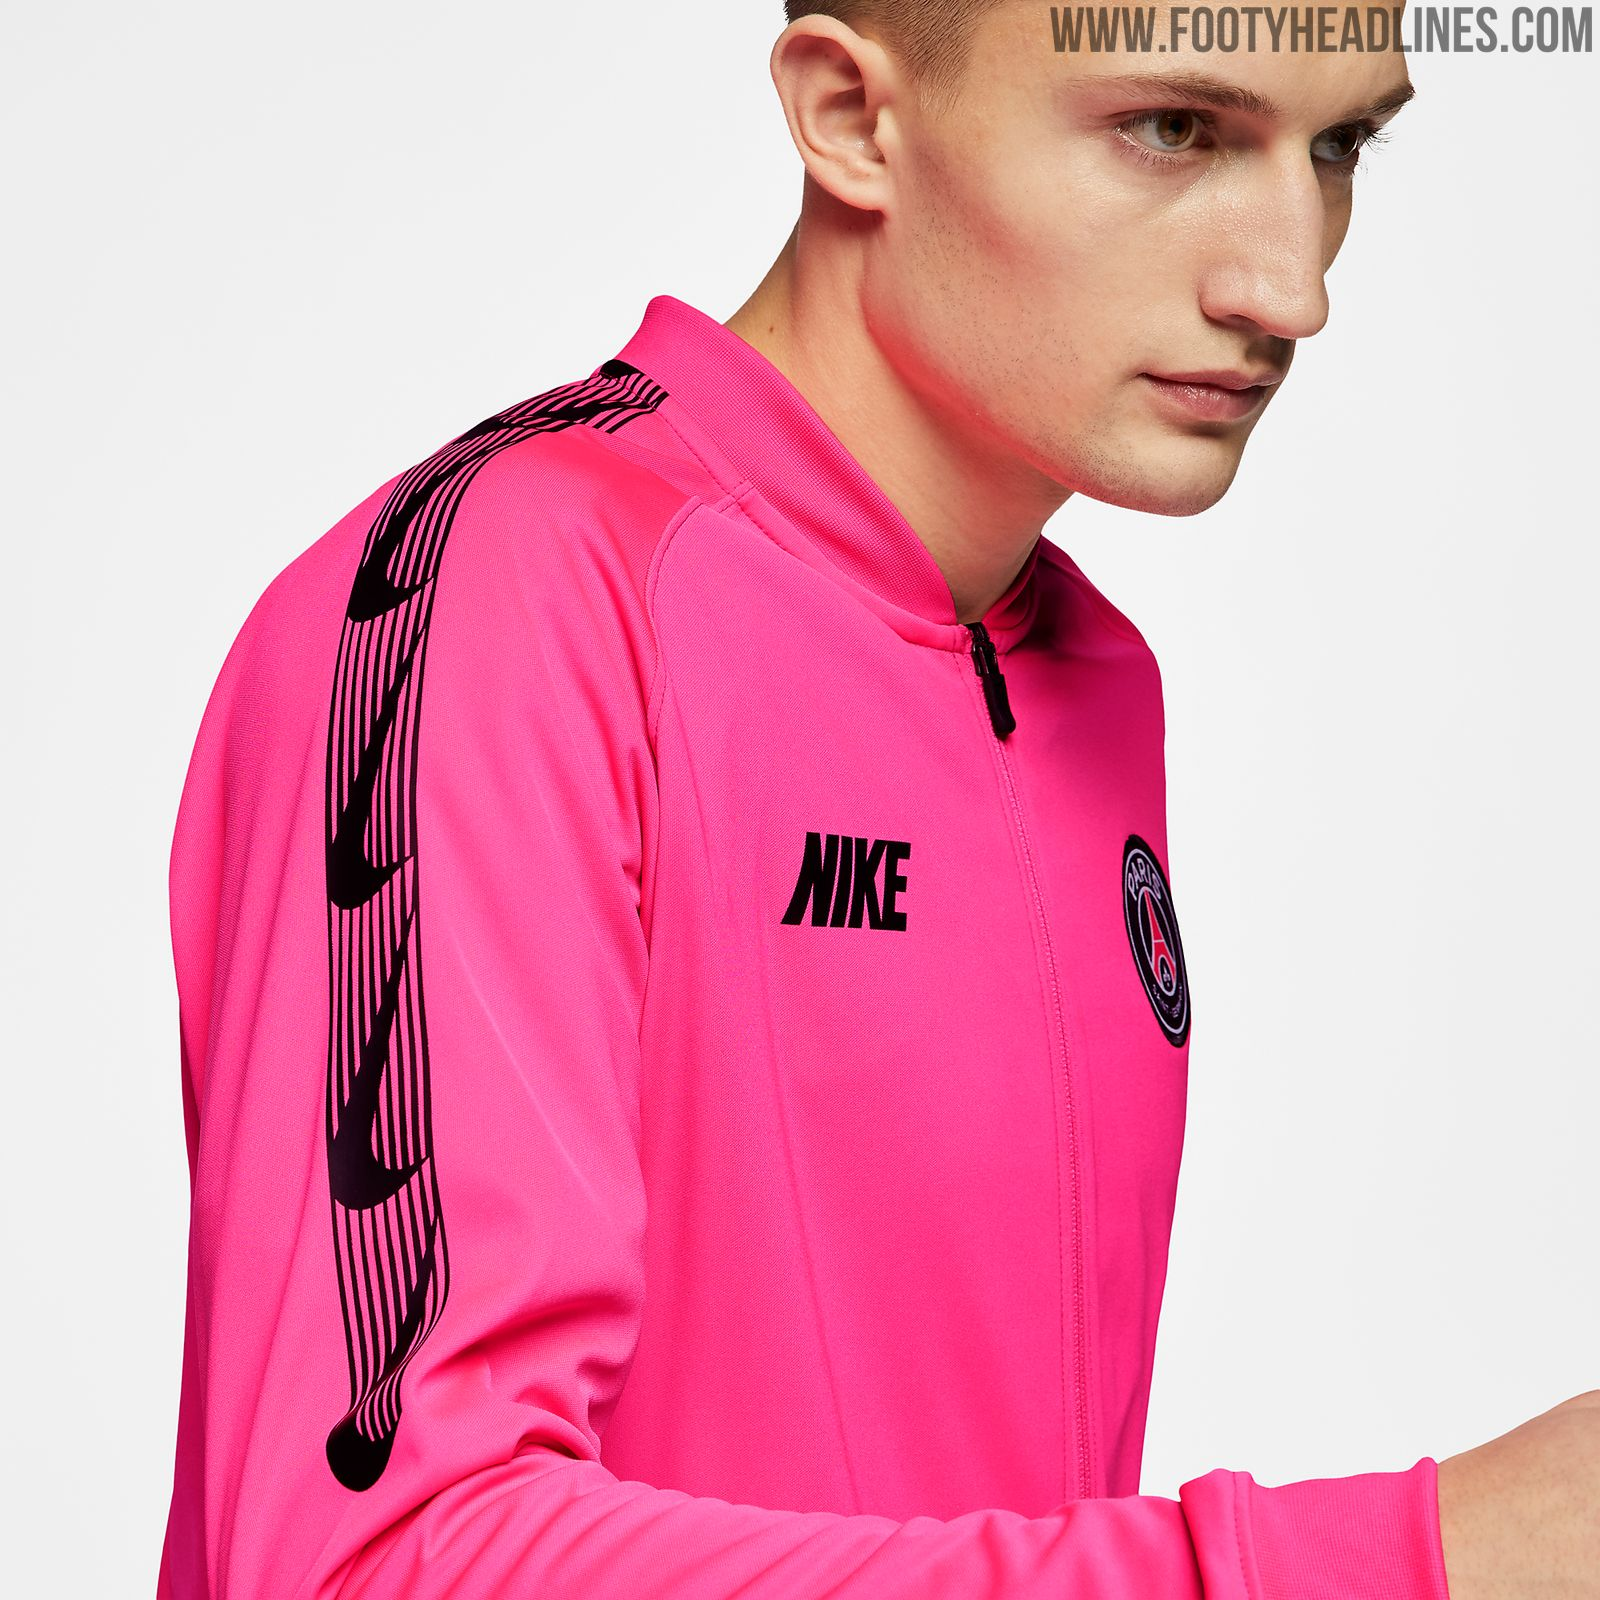 c79fc974349944 New Nike Style  Pink PSG 2019 Training Kit Released - Footy Headlines